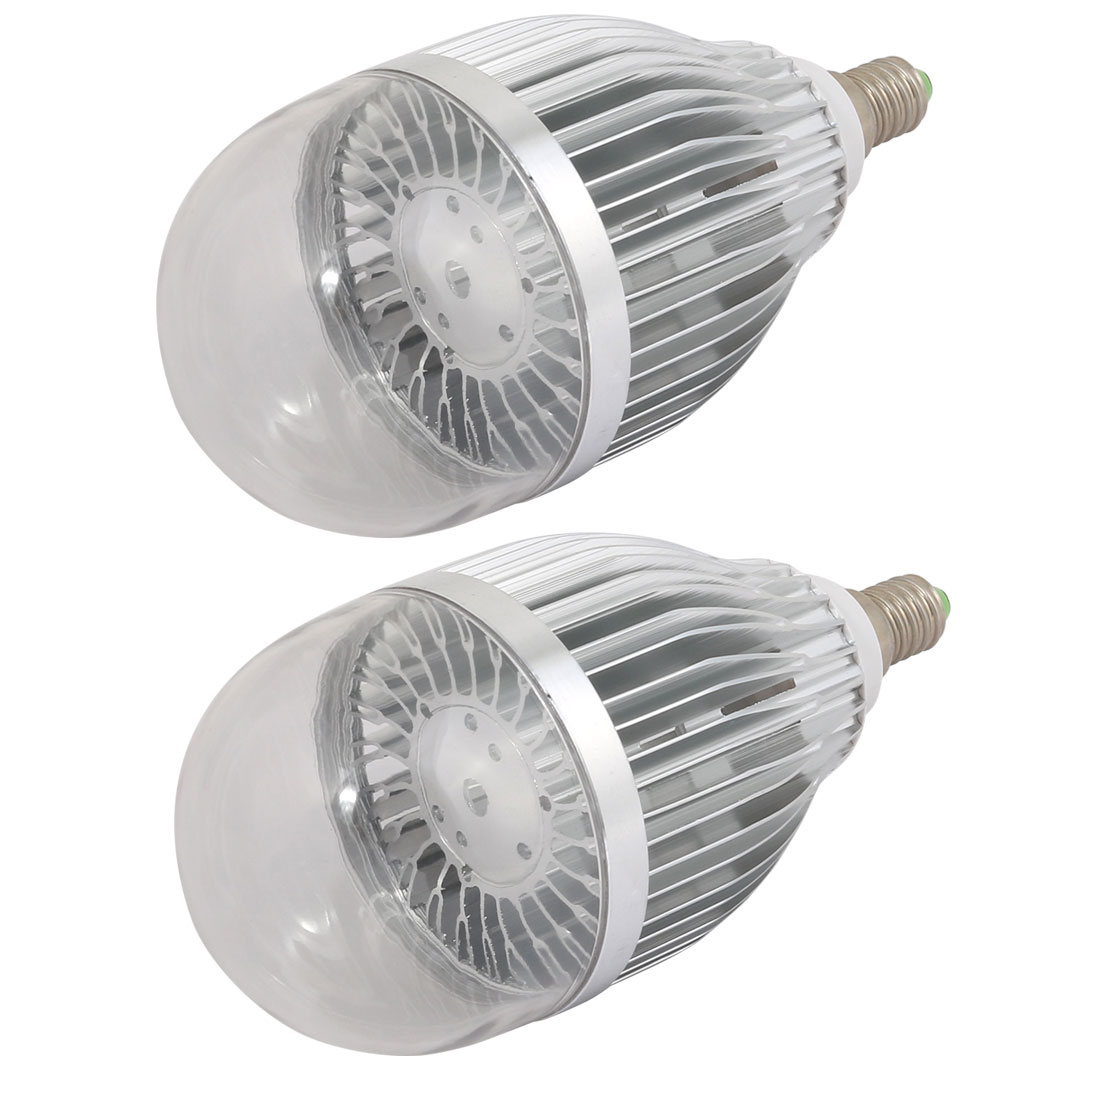 2 Pcs 9W 12W Slivery Aluminum Ball - Bulb Lamp Housing E14 Base w Frosted Cover